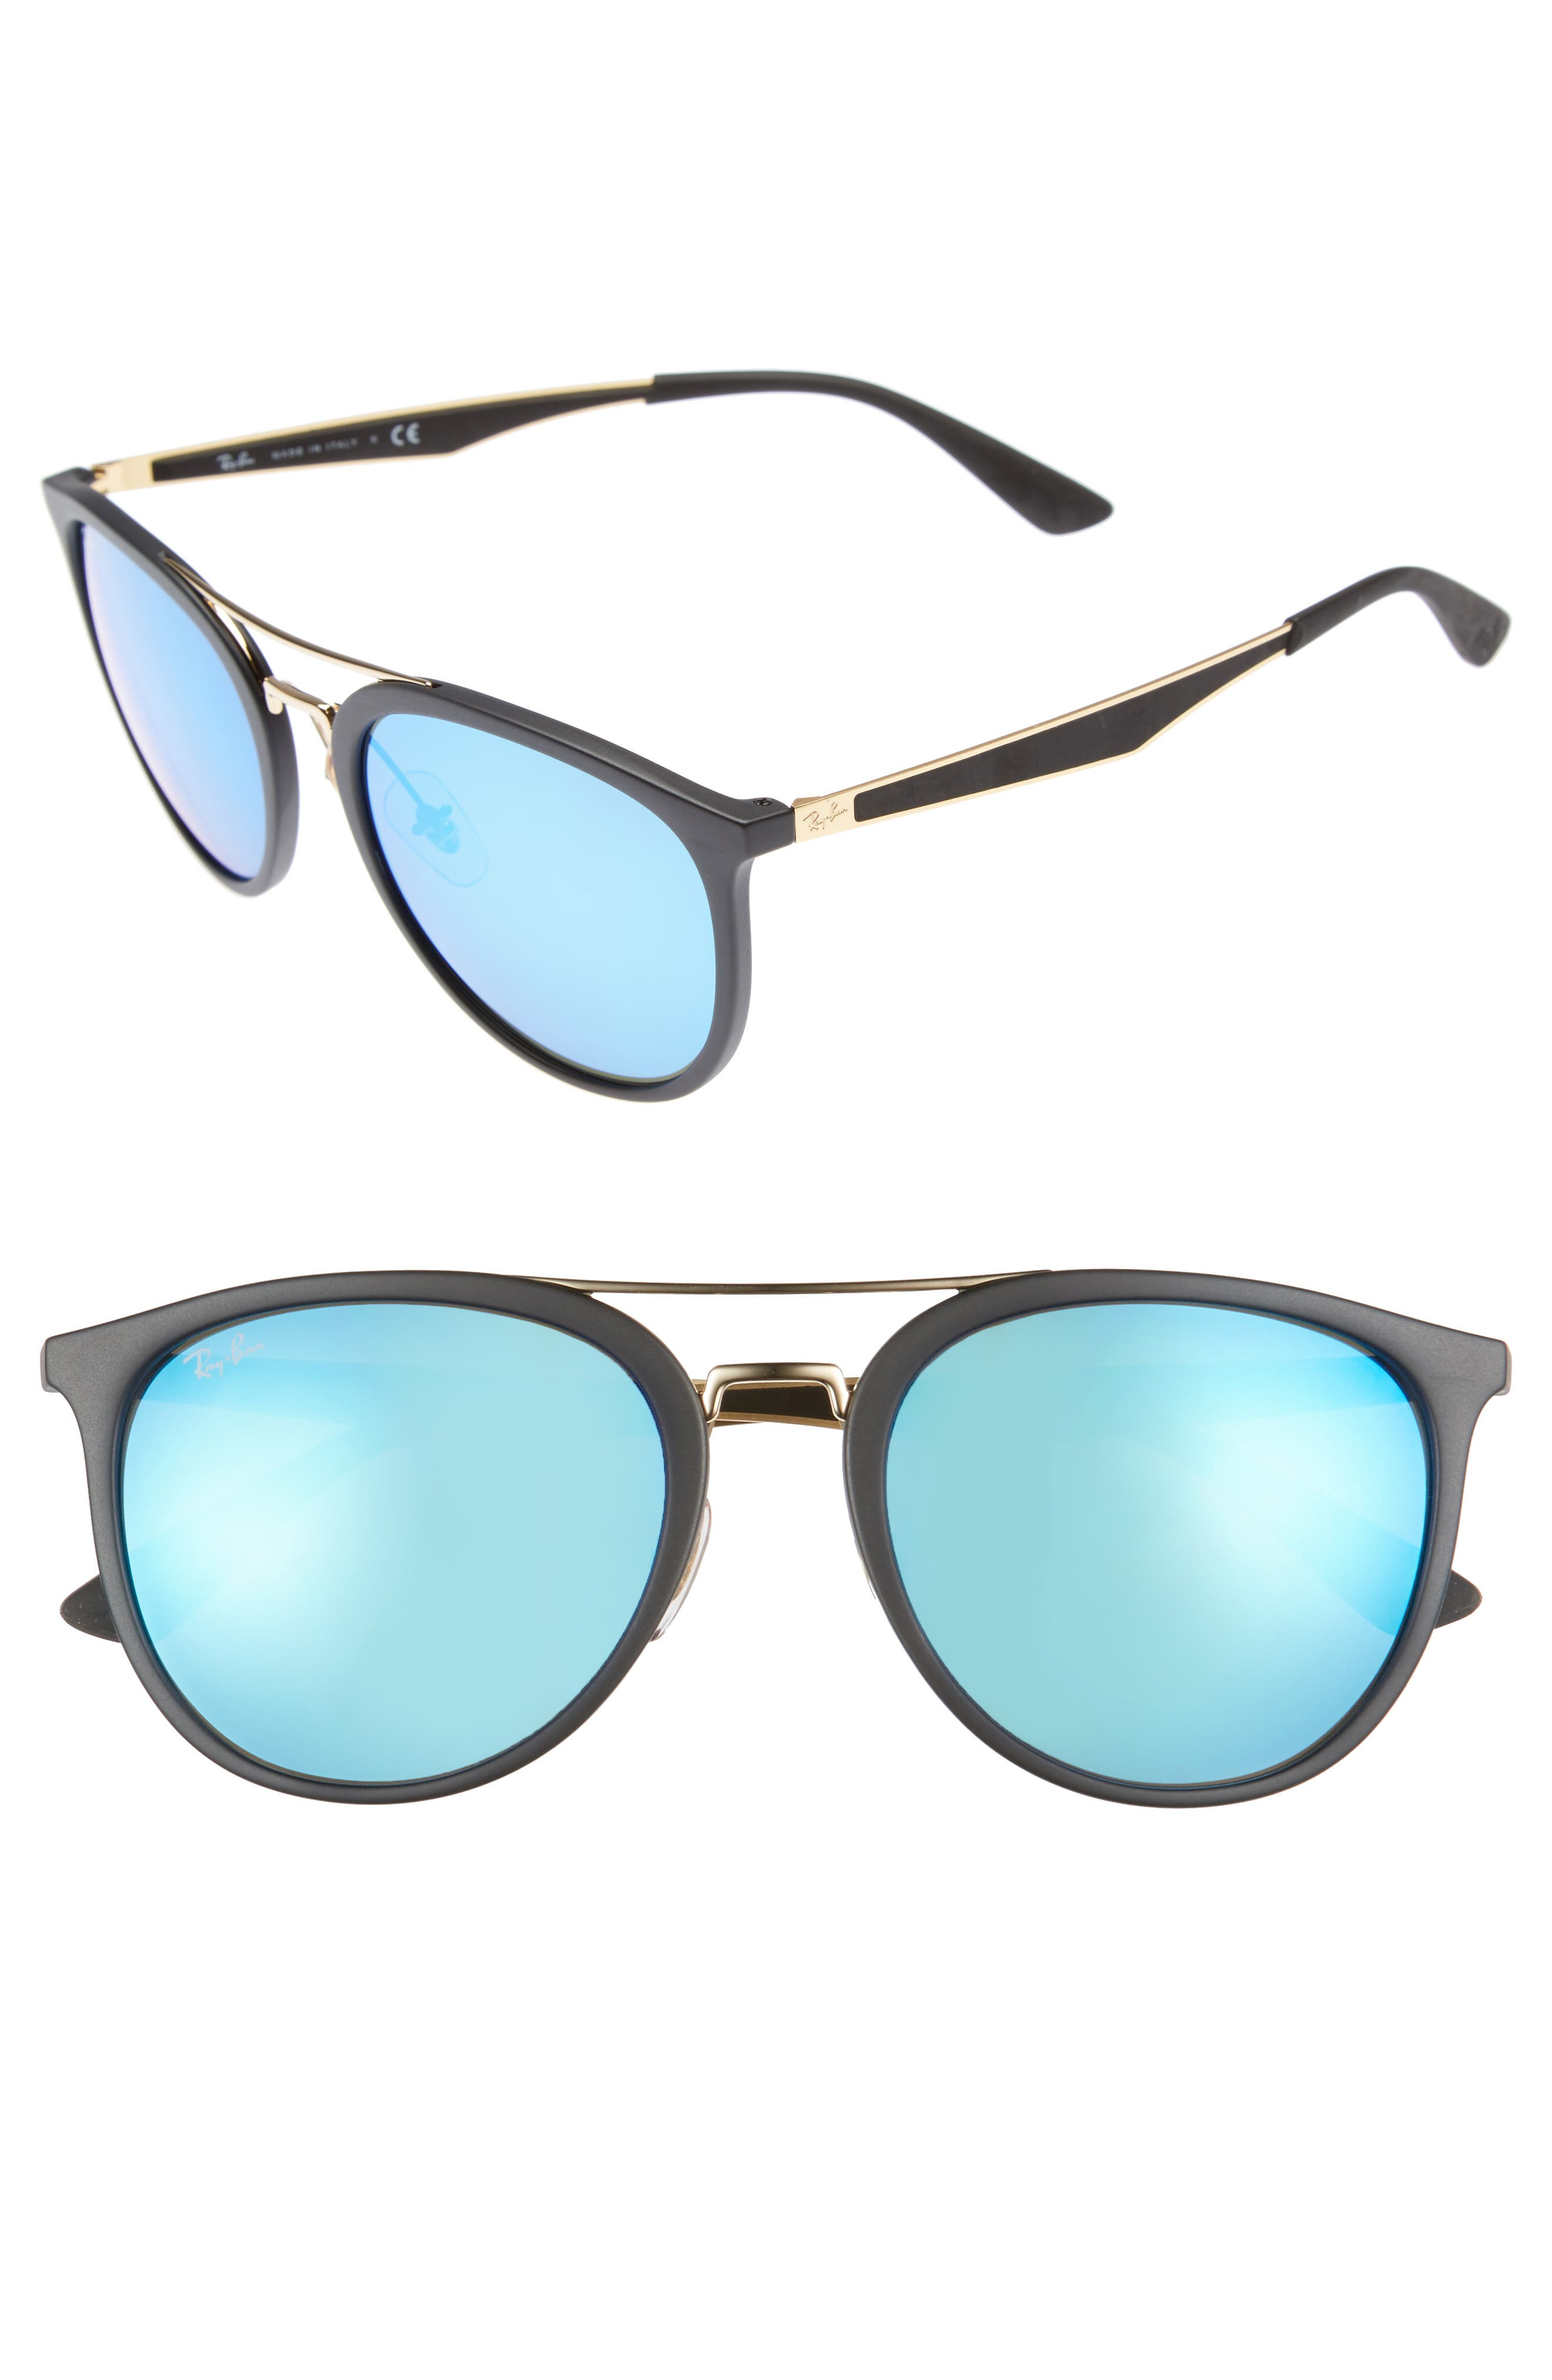 55mm Retro Sunglasses,                             Main thumbnail 1, color,